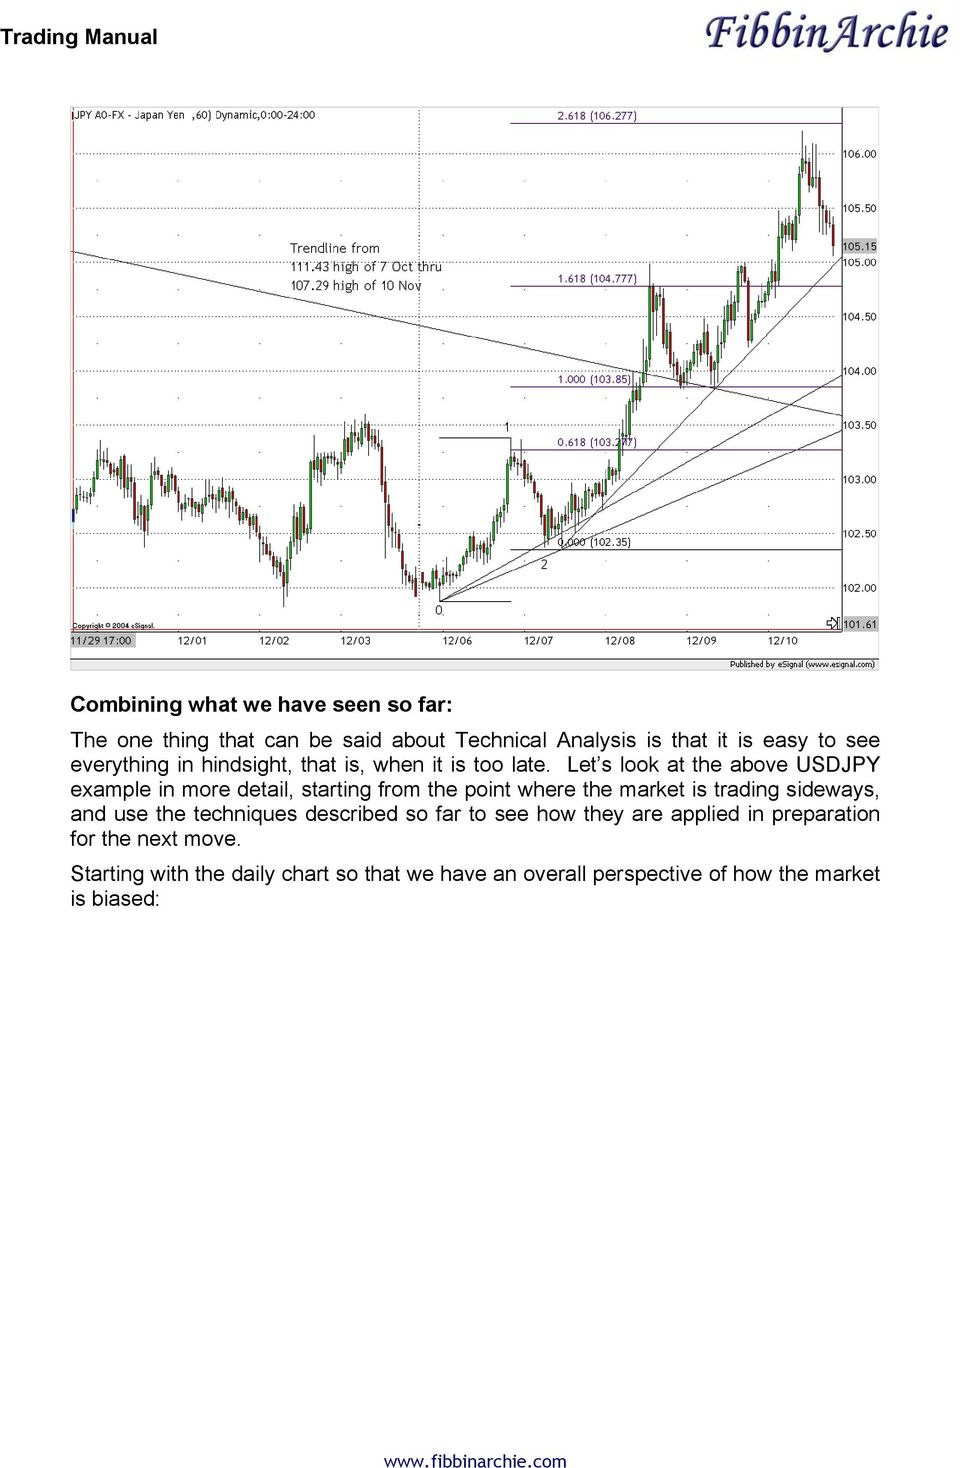 Let s look at the above USDJPY example in more detail, starting from the point where the market is trading sideways, and